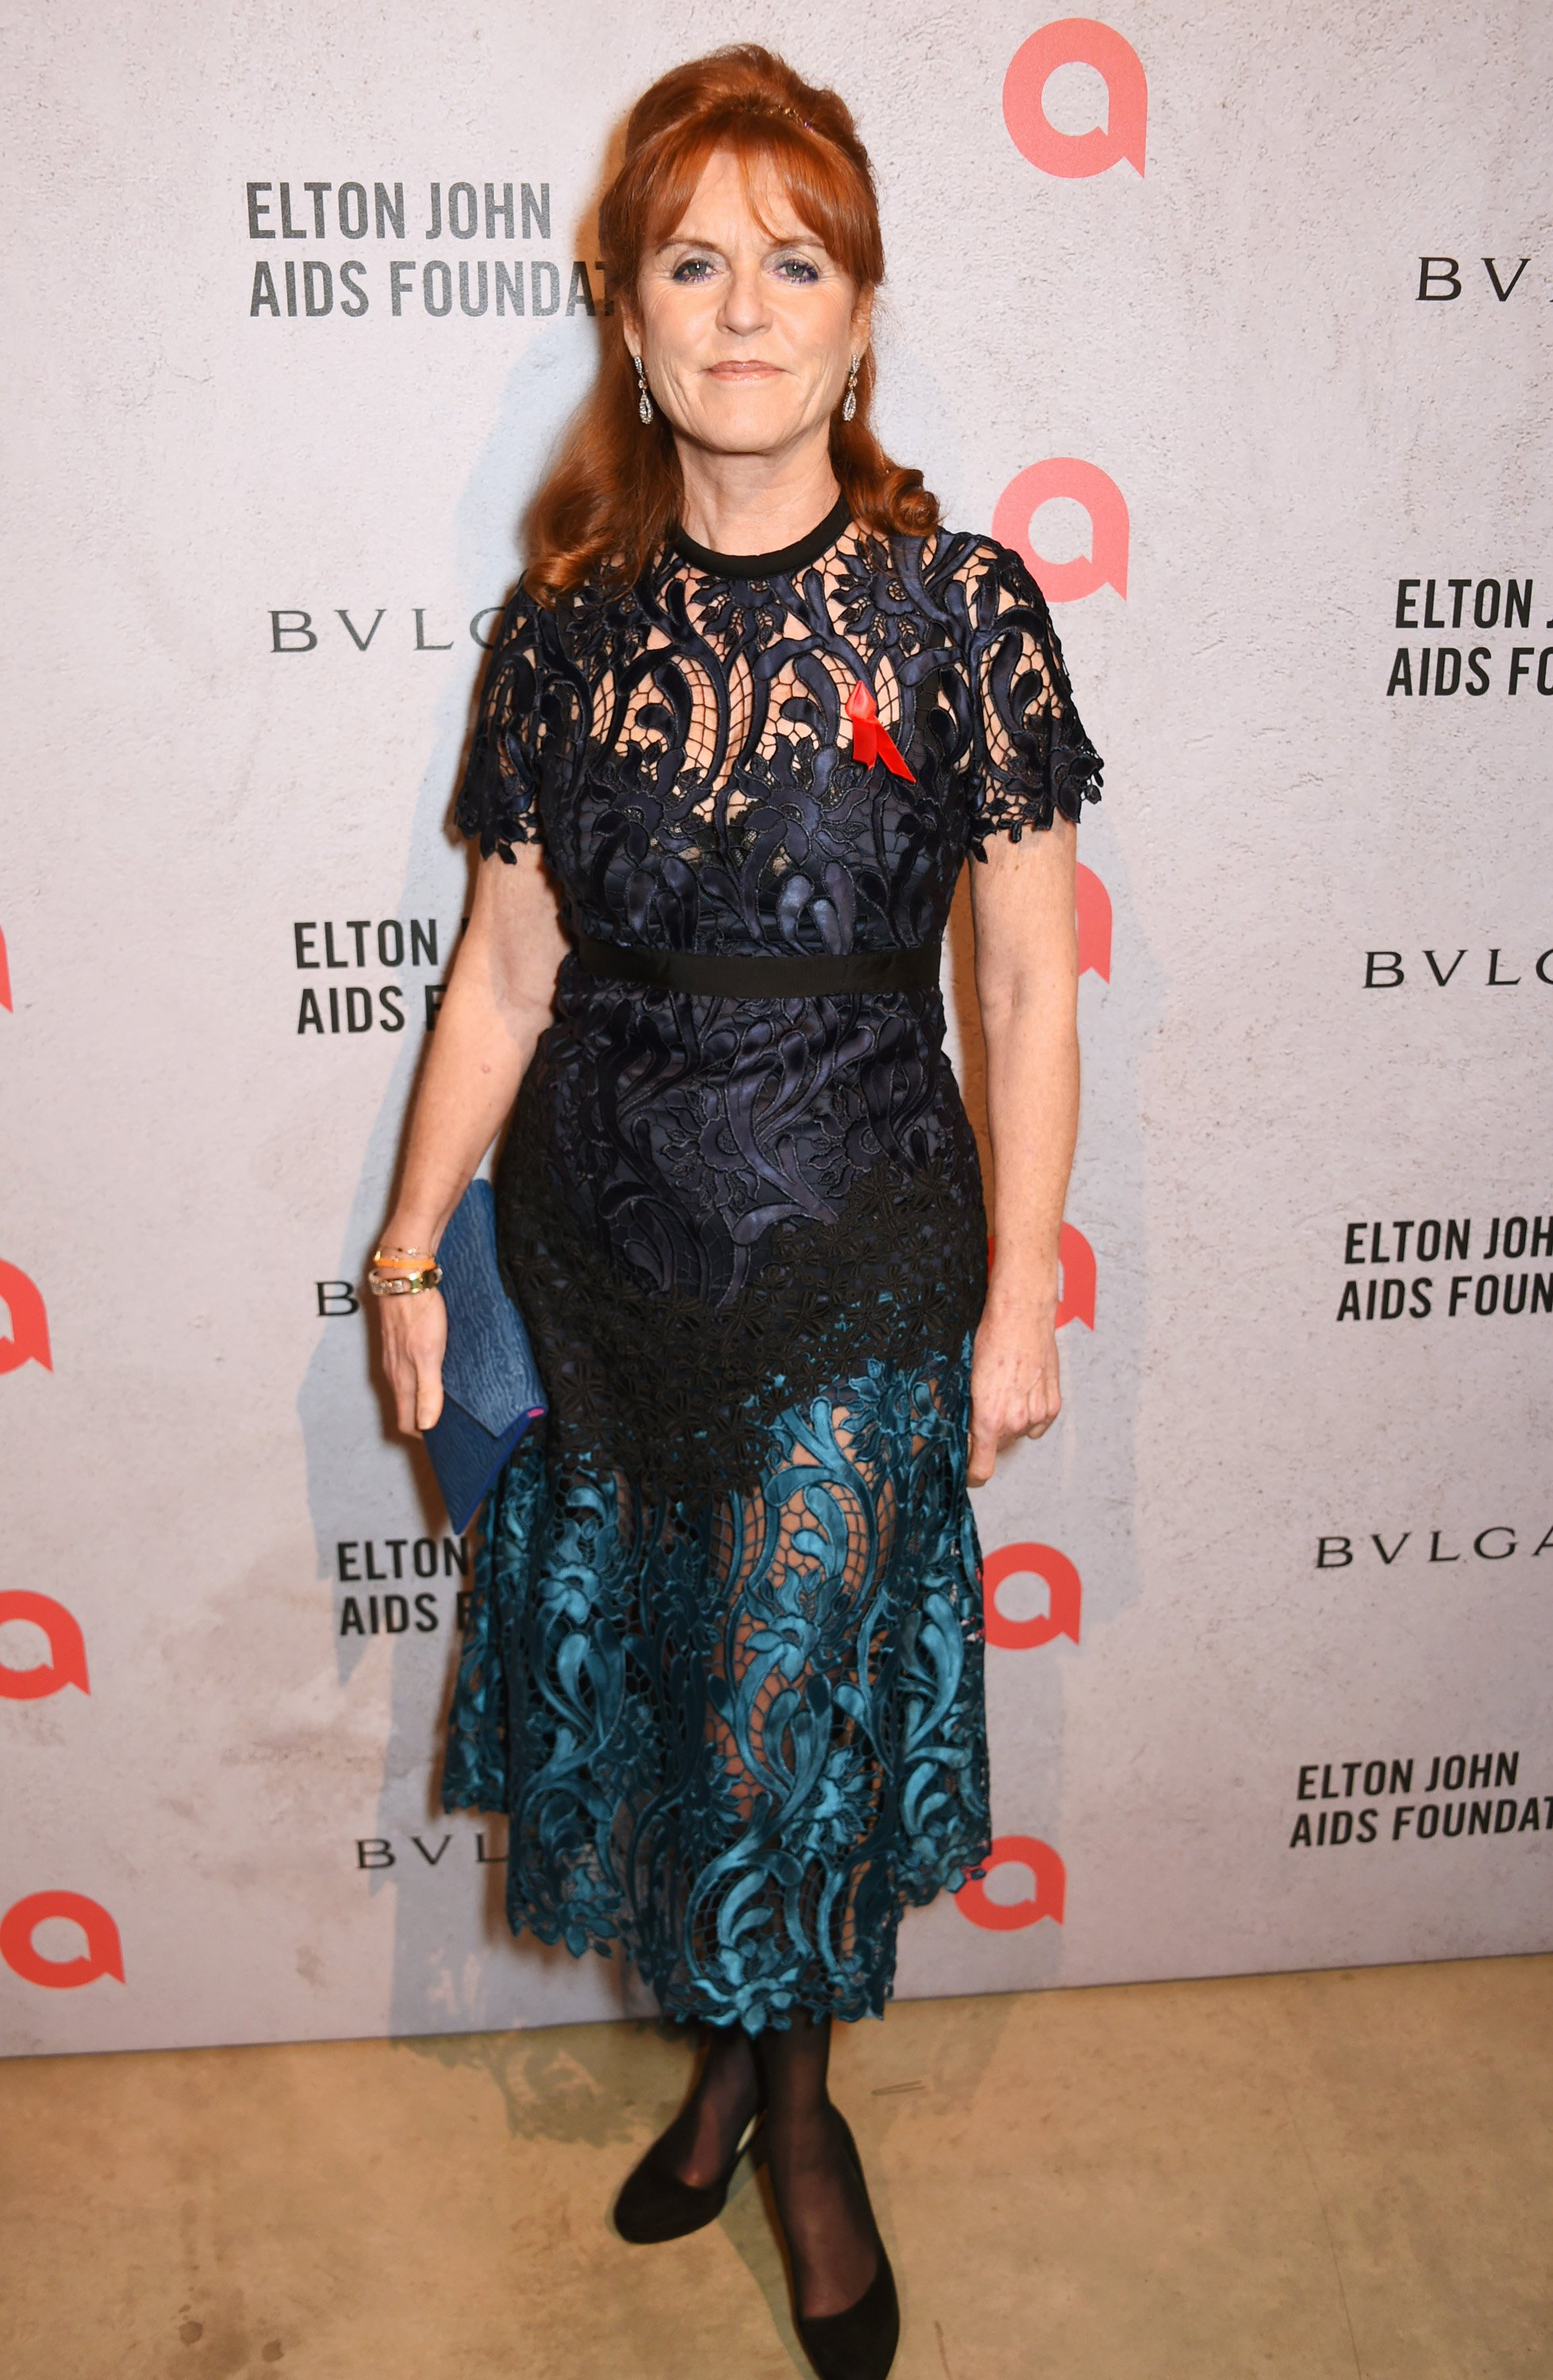 Sarah Ferguson, ex-wife of Prince Andrew, at the 20th Annual Elton John Aids Foundation Academy Awards Viewing Party| Photo: Getty Images